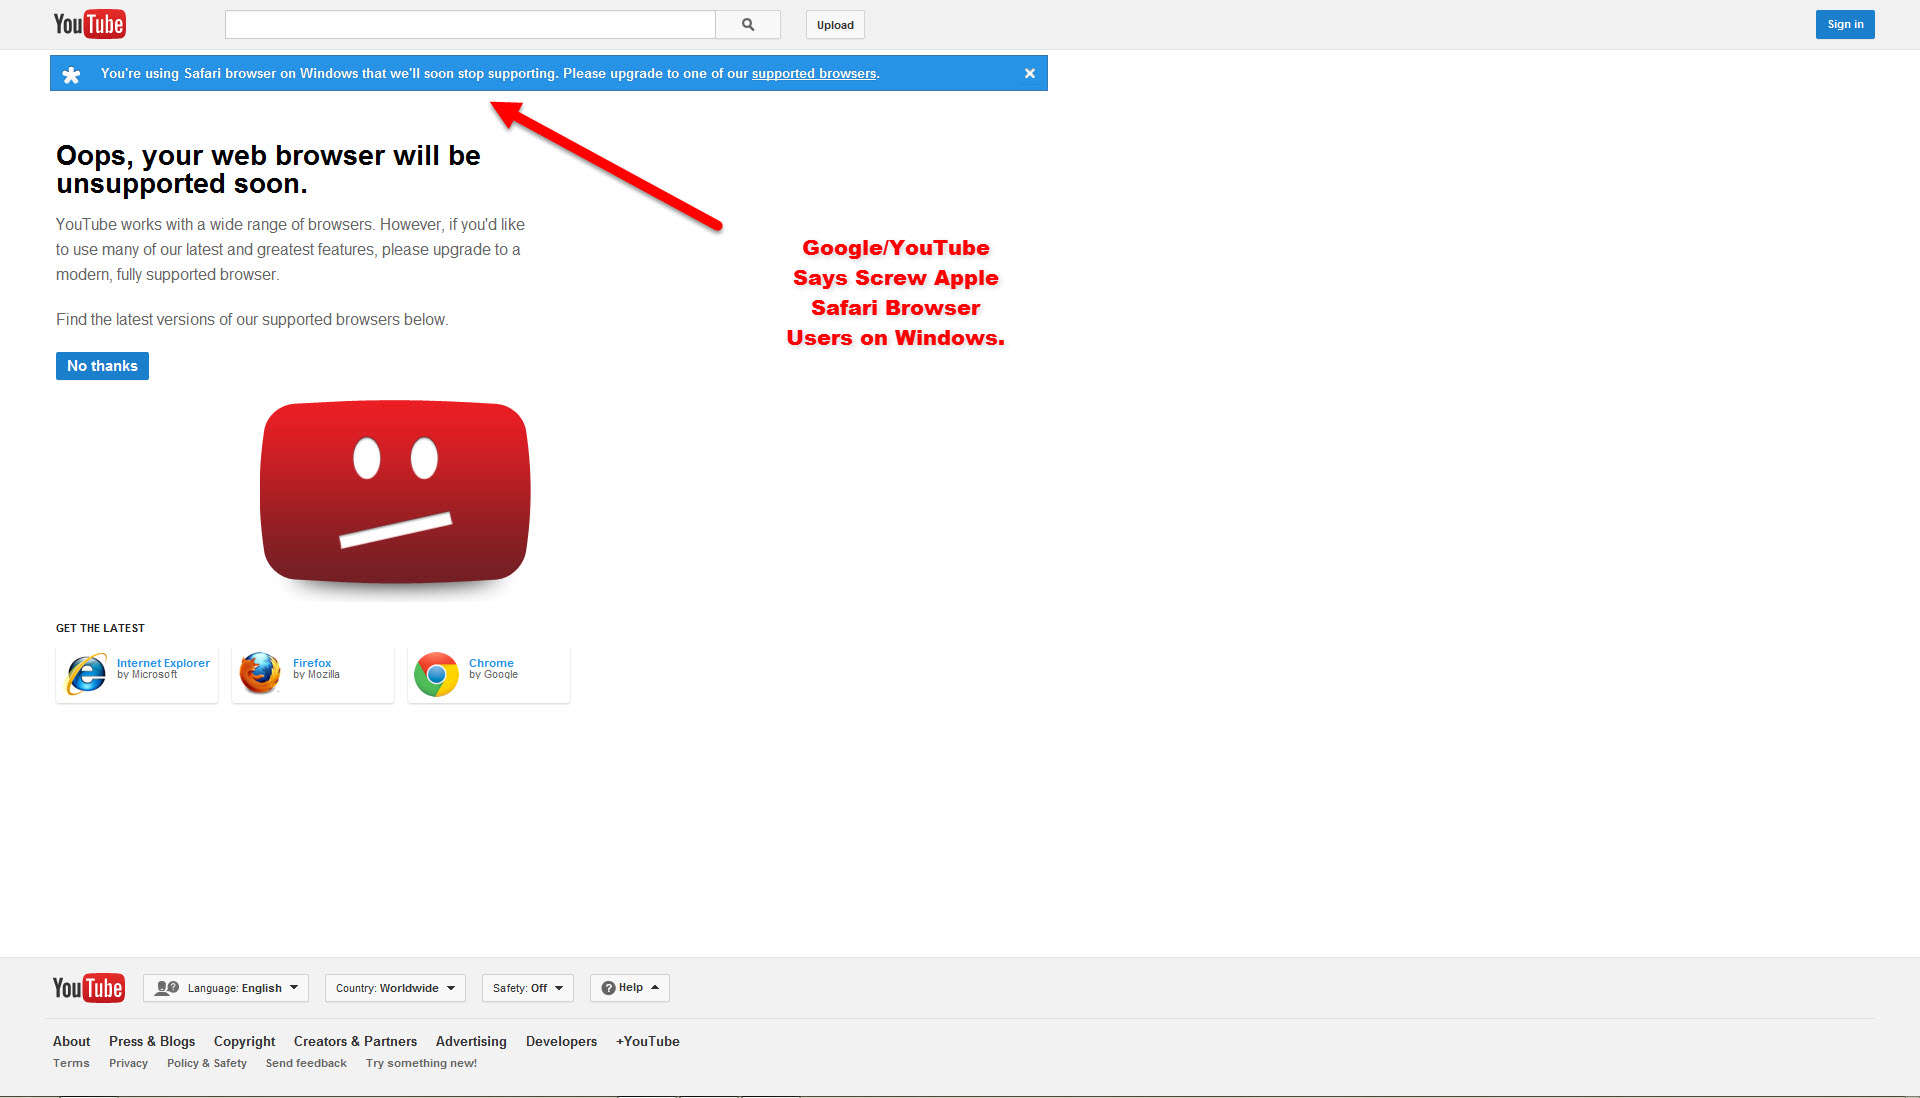 Google and YouTube Stops Supporting Windows Safari Browsers